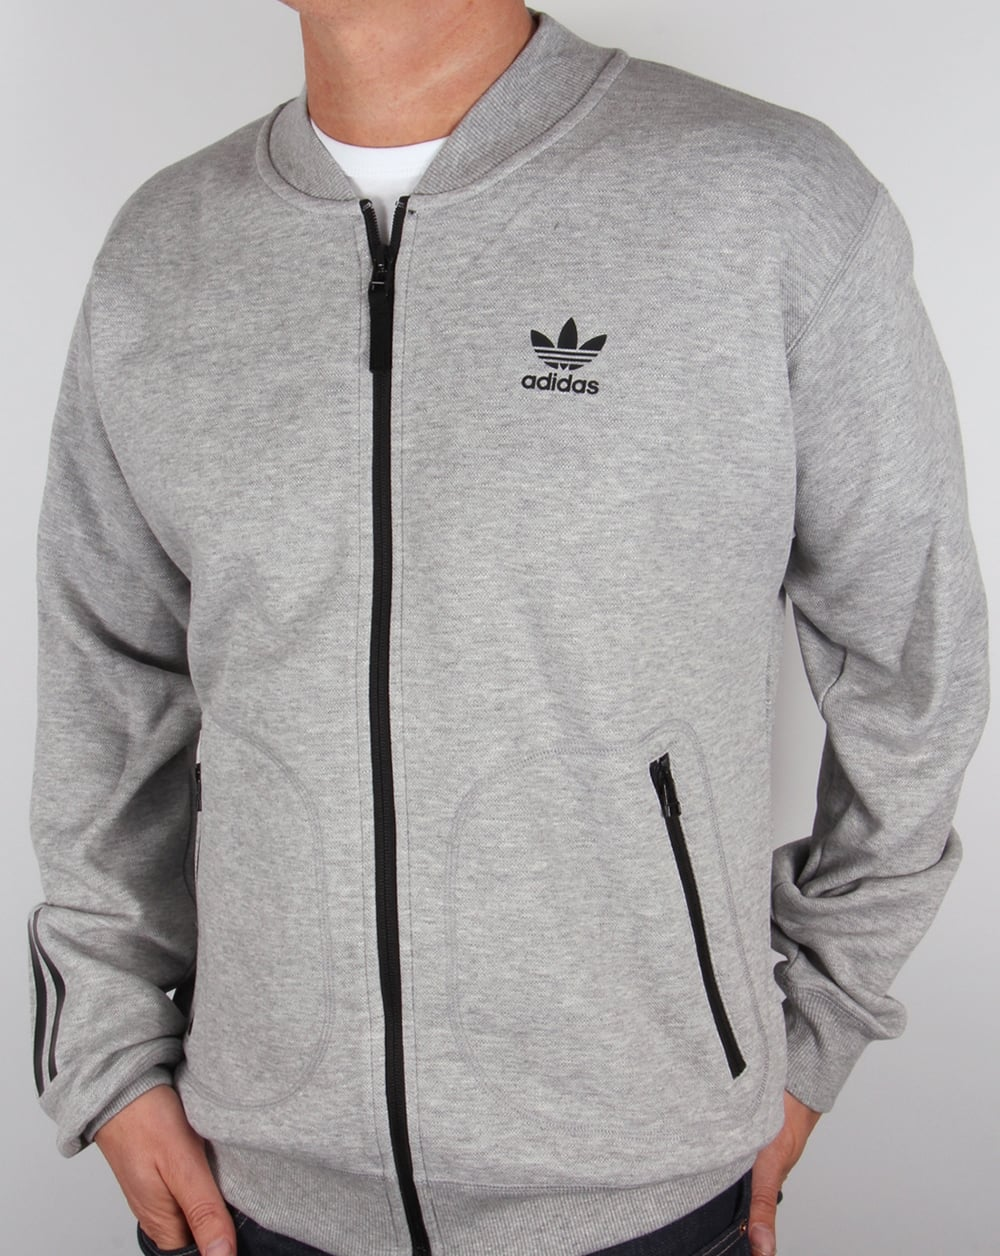 adidas Originals Adidas Originals Relaxed Superstar Track Top Grey Heather 27b29f3ff2